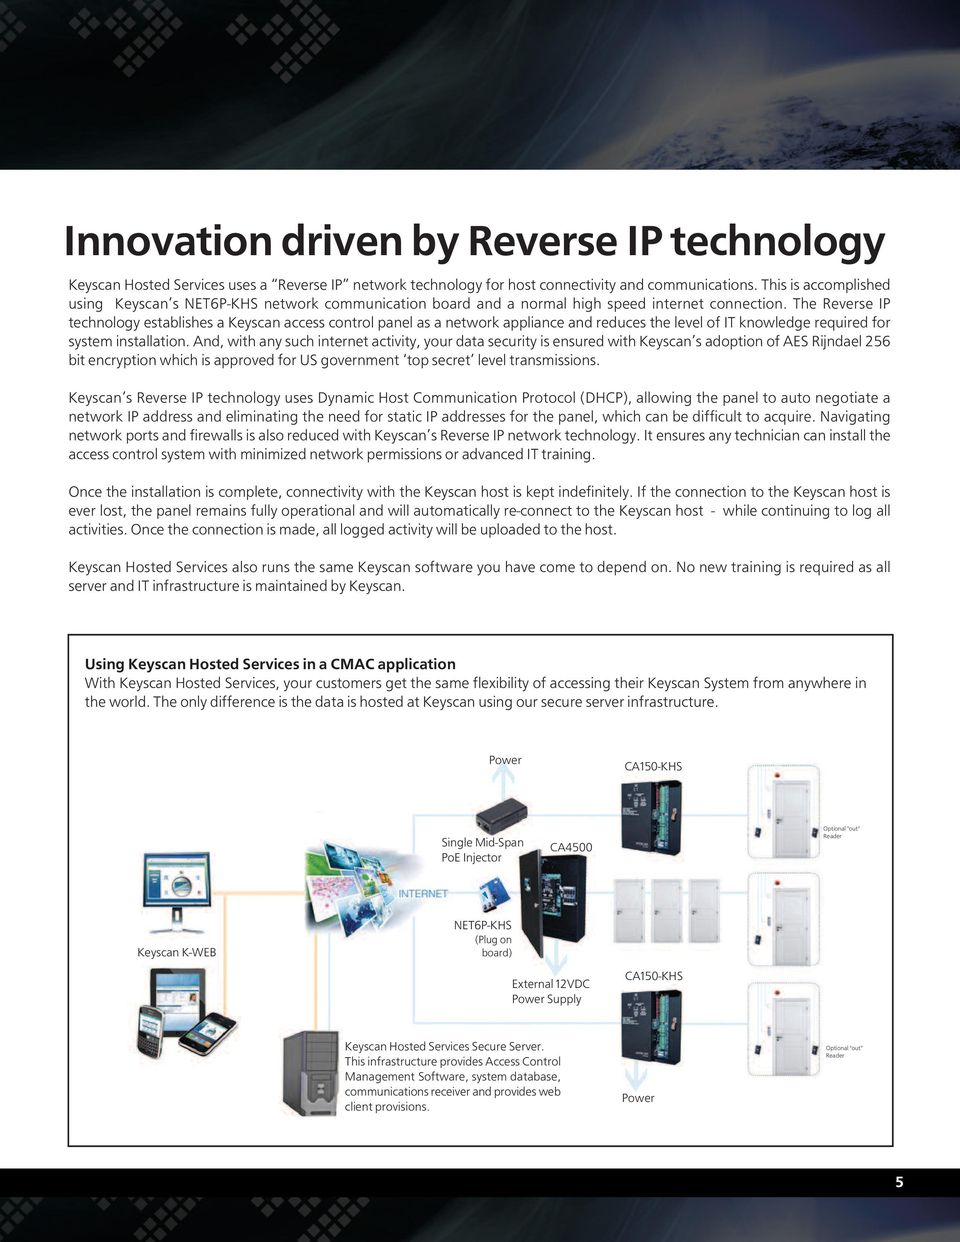 The Reverse IP technology establishes a Keyscan access control panel as a network appliance and reduces the level of IT knowledge required for system installation.